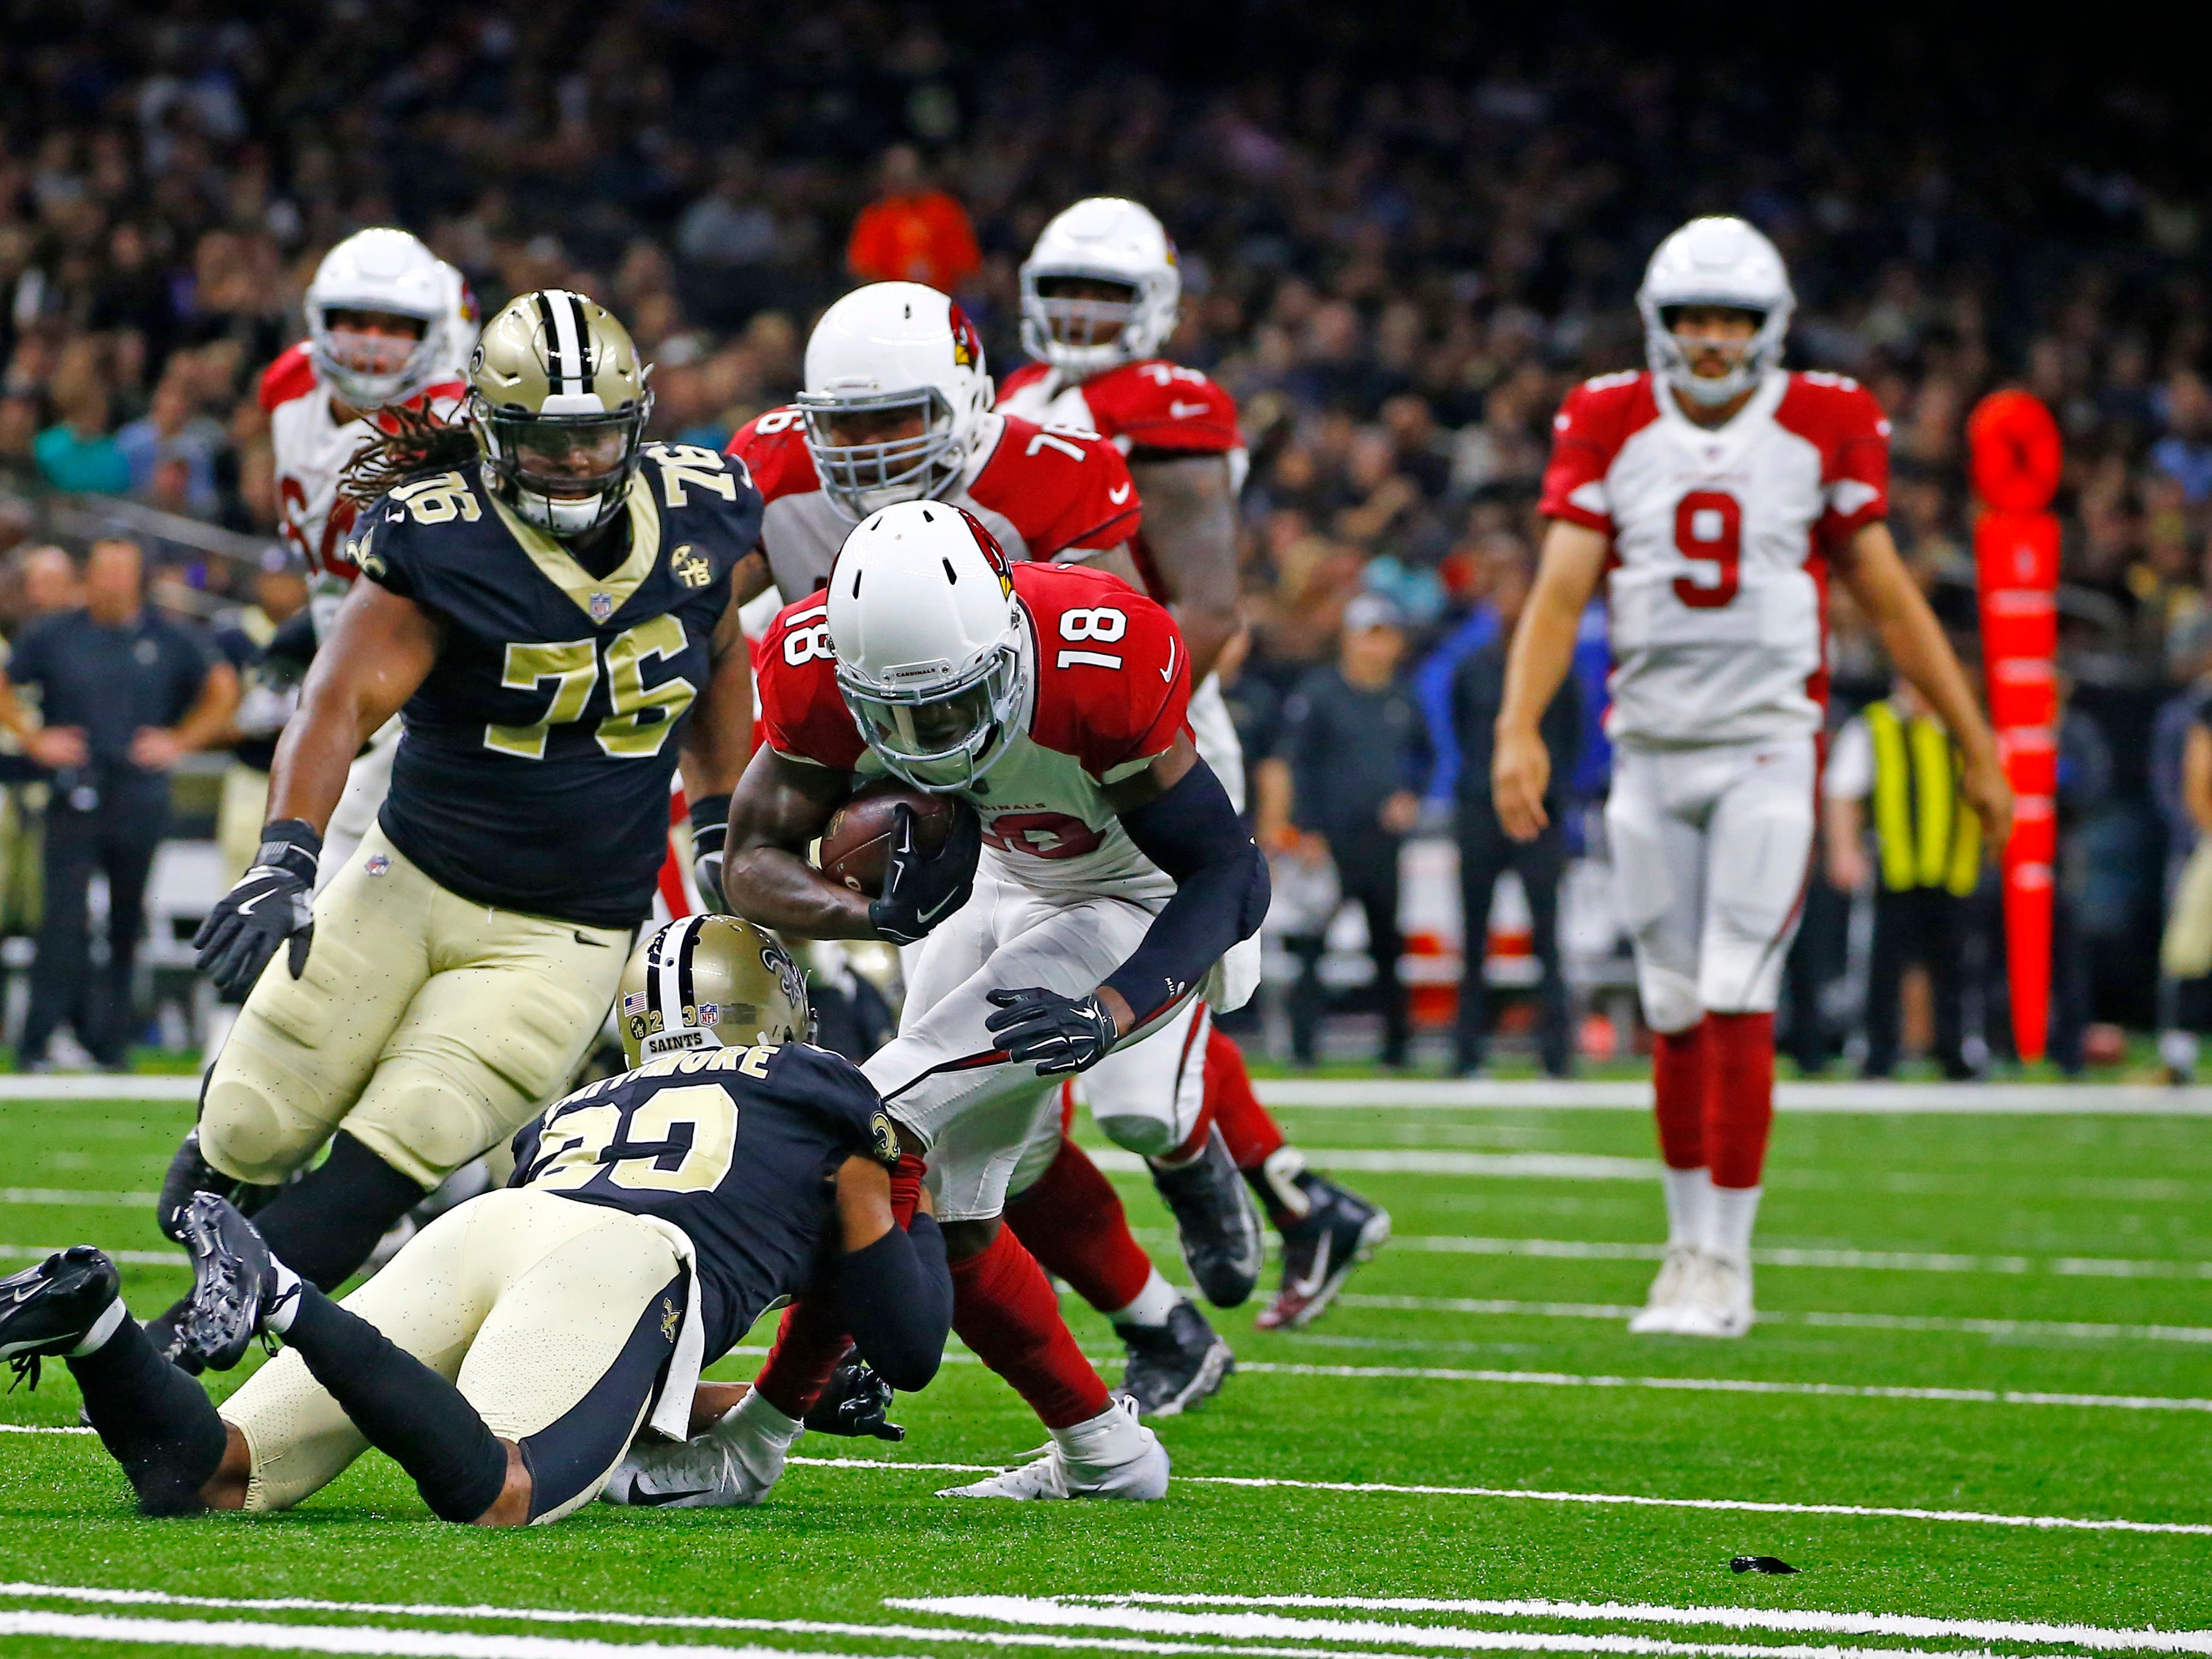 Arizona Cardinals wide receiver Greg Little (18) carries against New Orleans Saints safety Marshon Lattimore in the first half of an NFL preseason football game in New Orleans, Friday, Aug. 17, 2018.